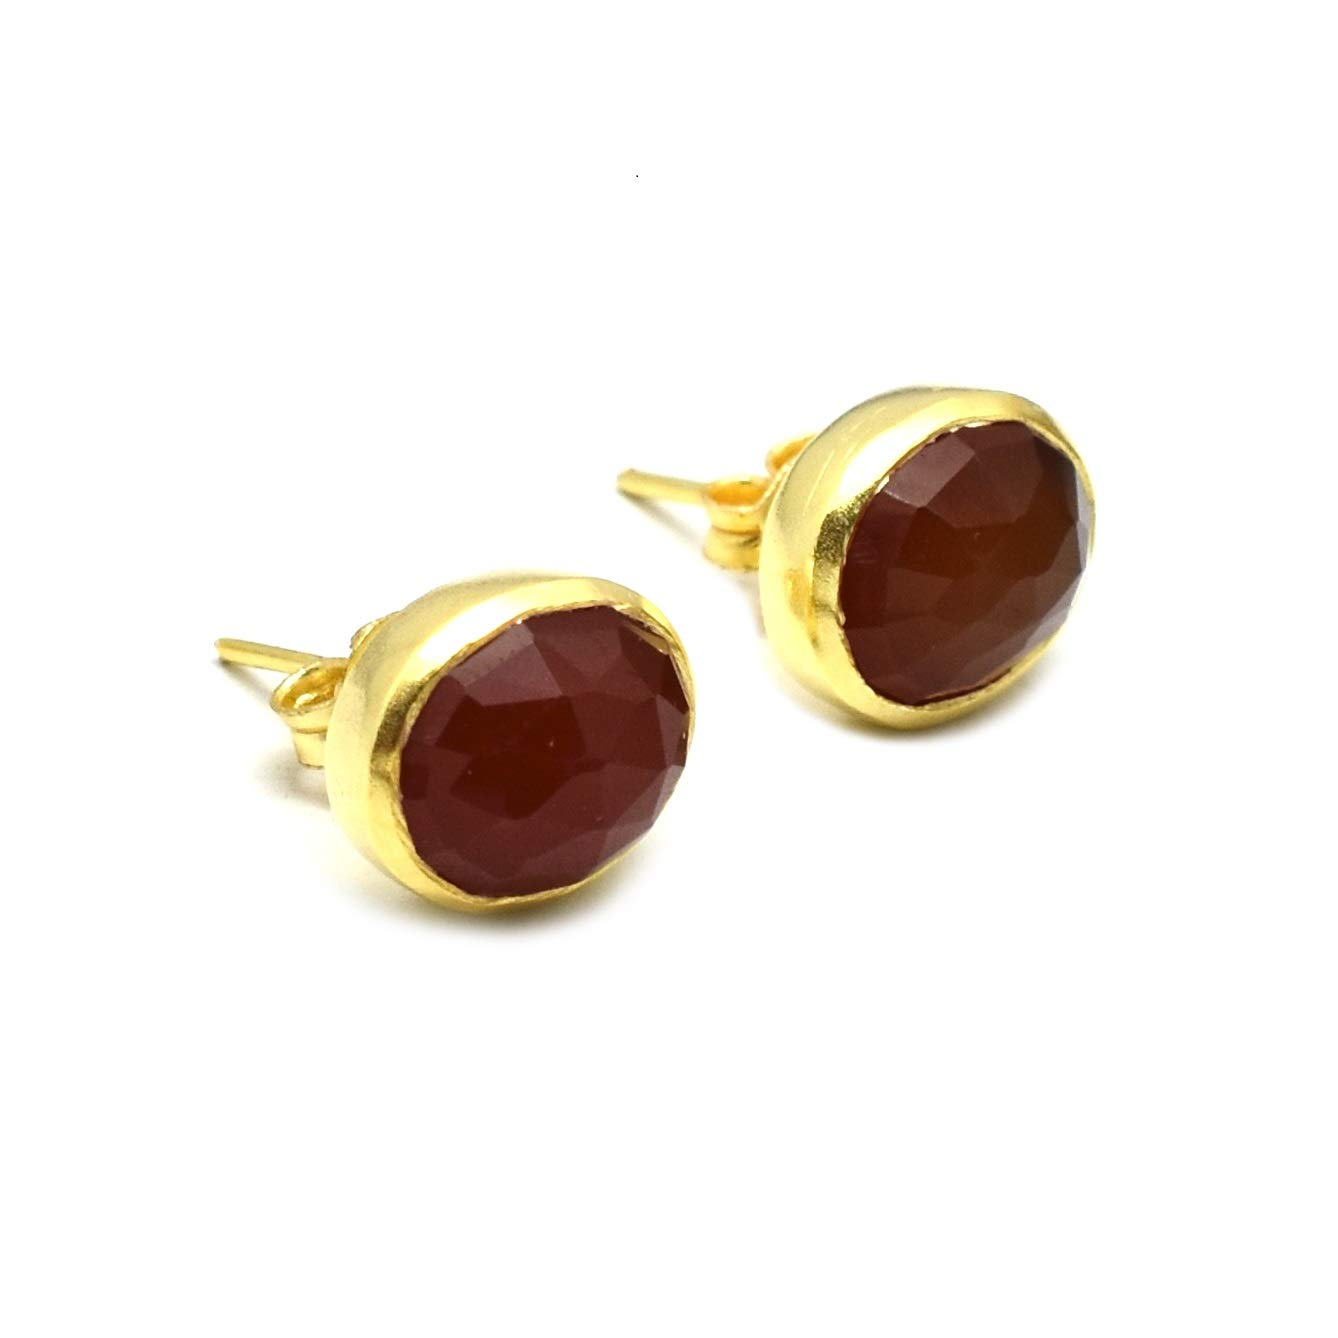 The V Collection earrings yellow gold plated carnelian stud earrings for women and girl wear